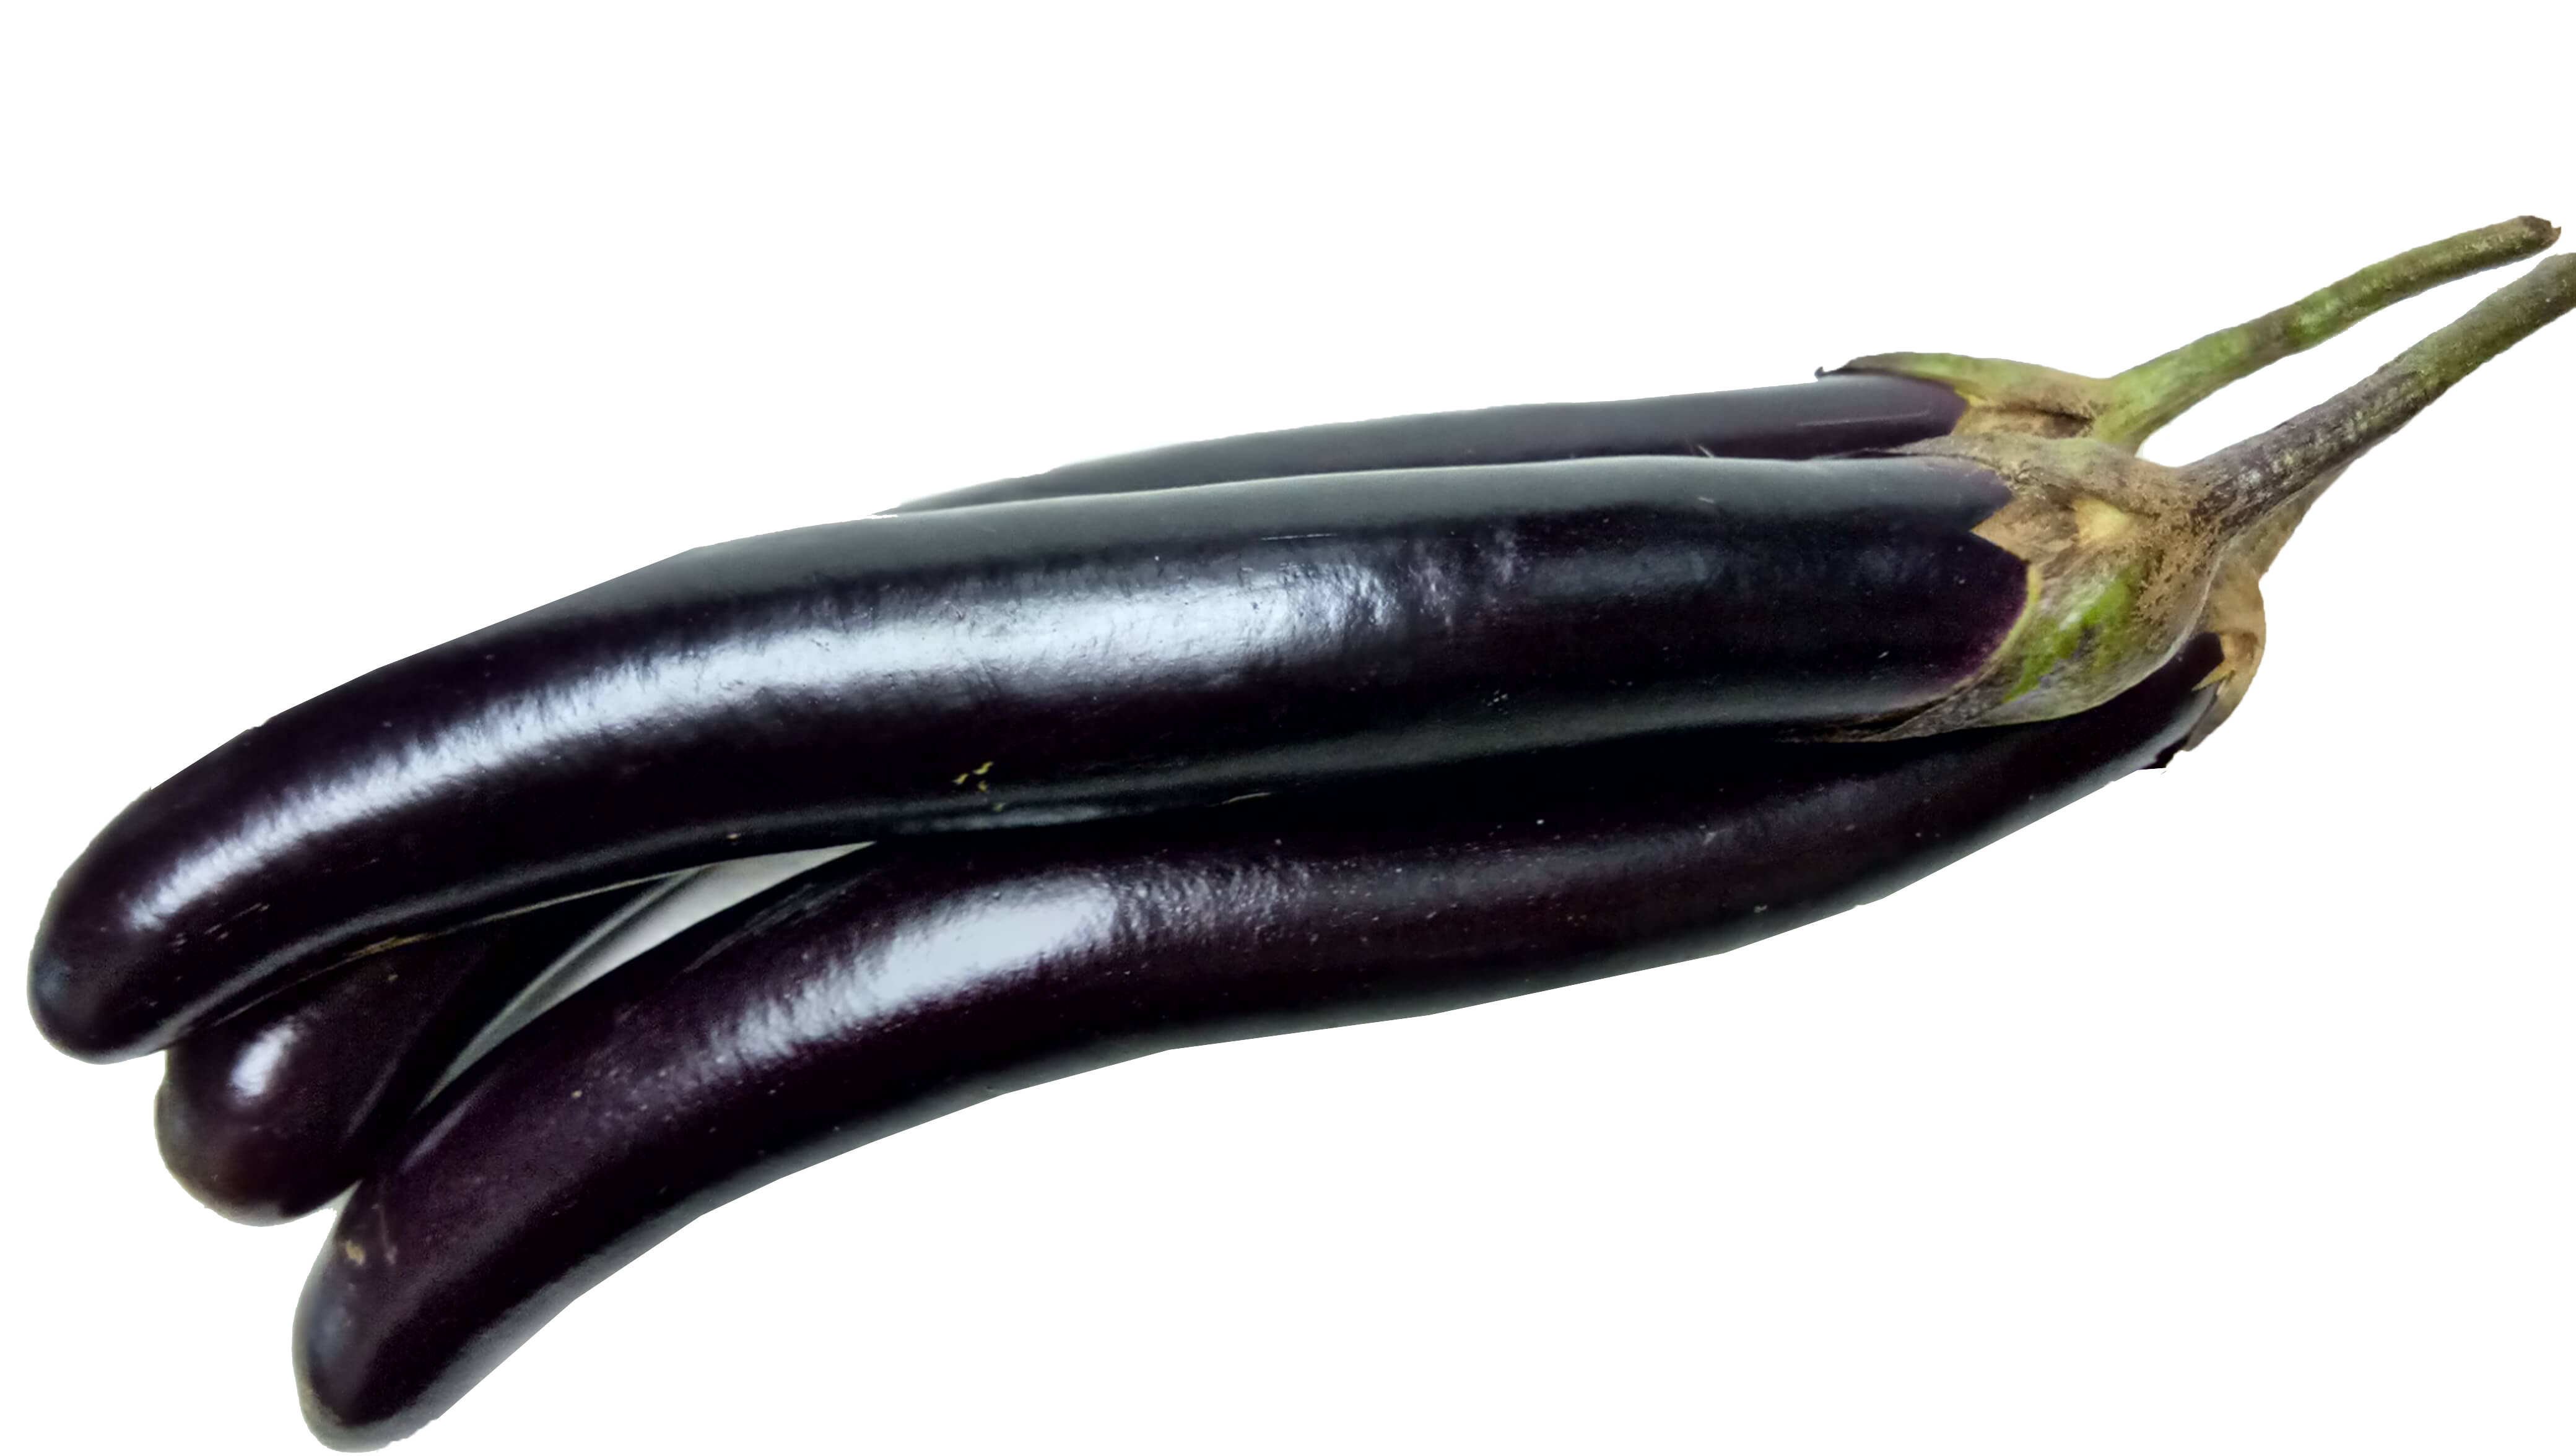 4160x2352 Eggplant (By Zf) Agrigrocer